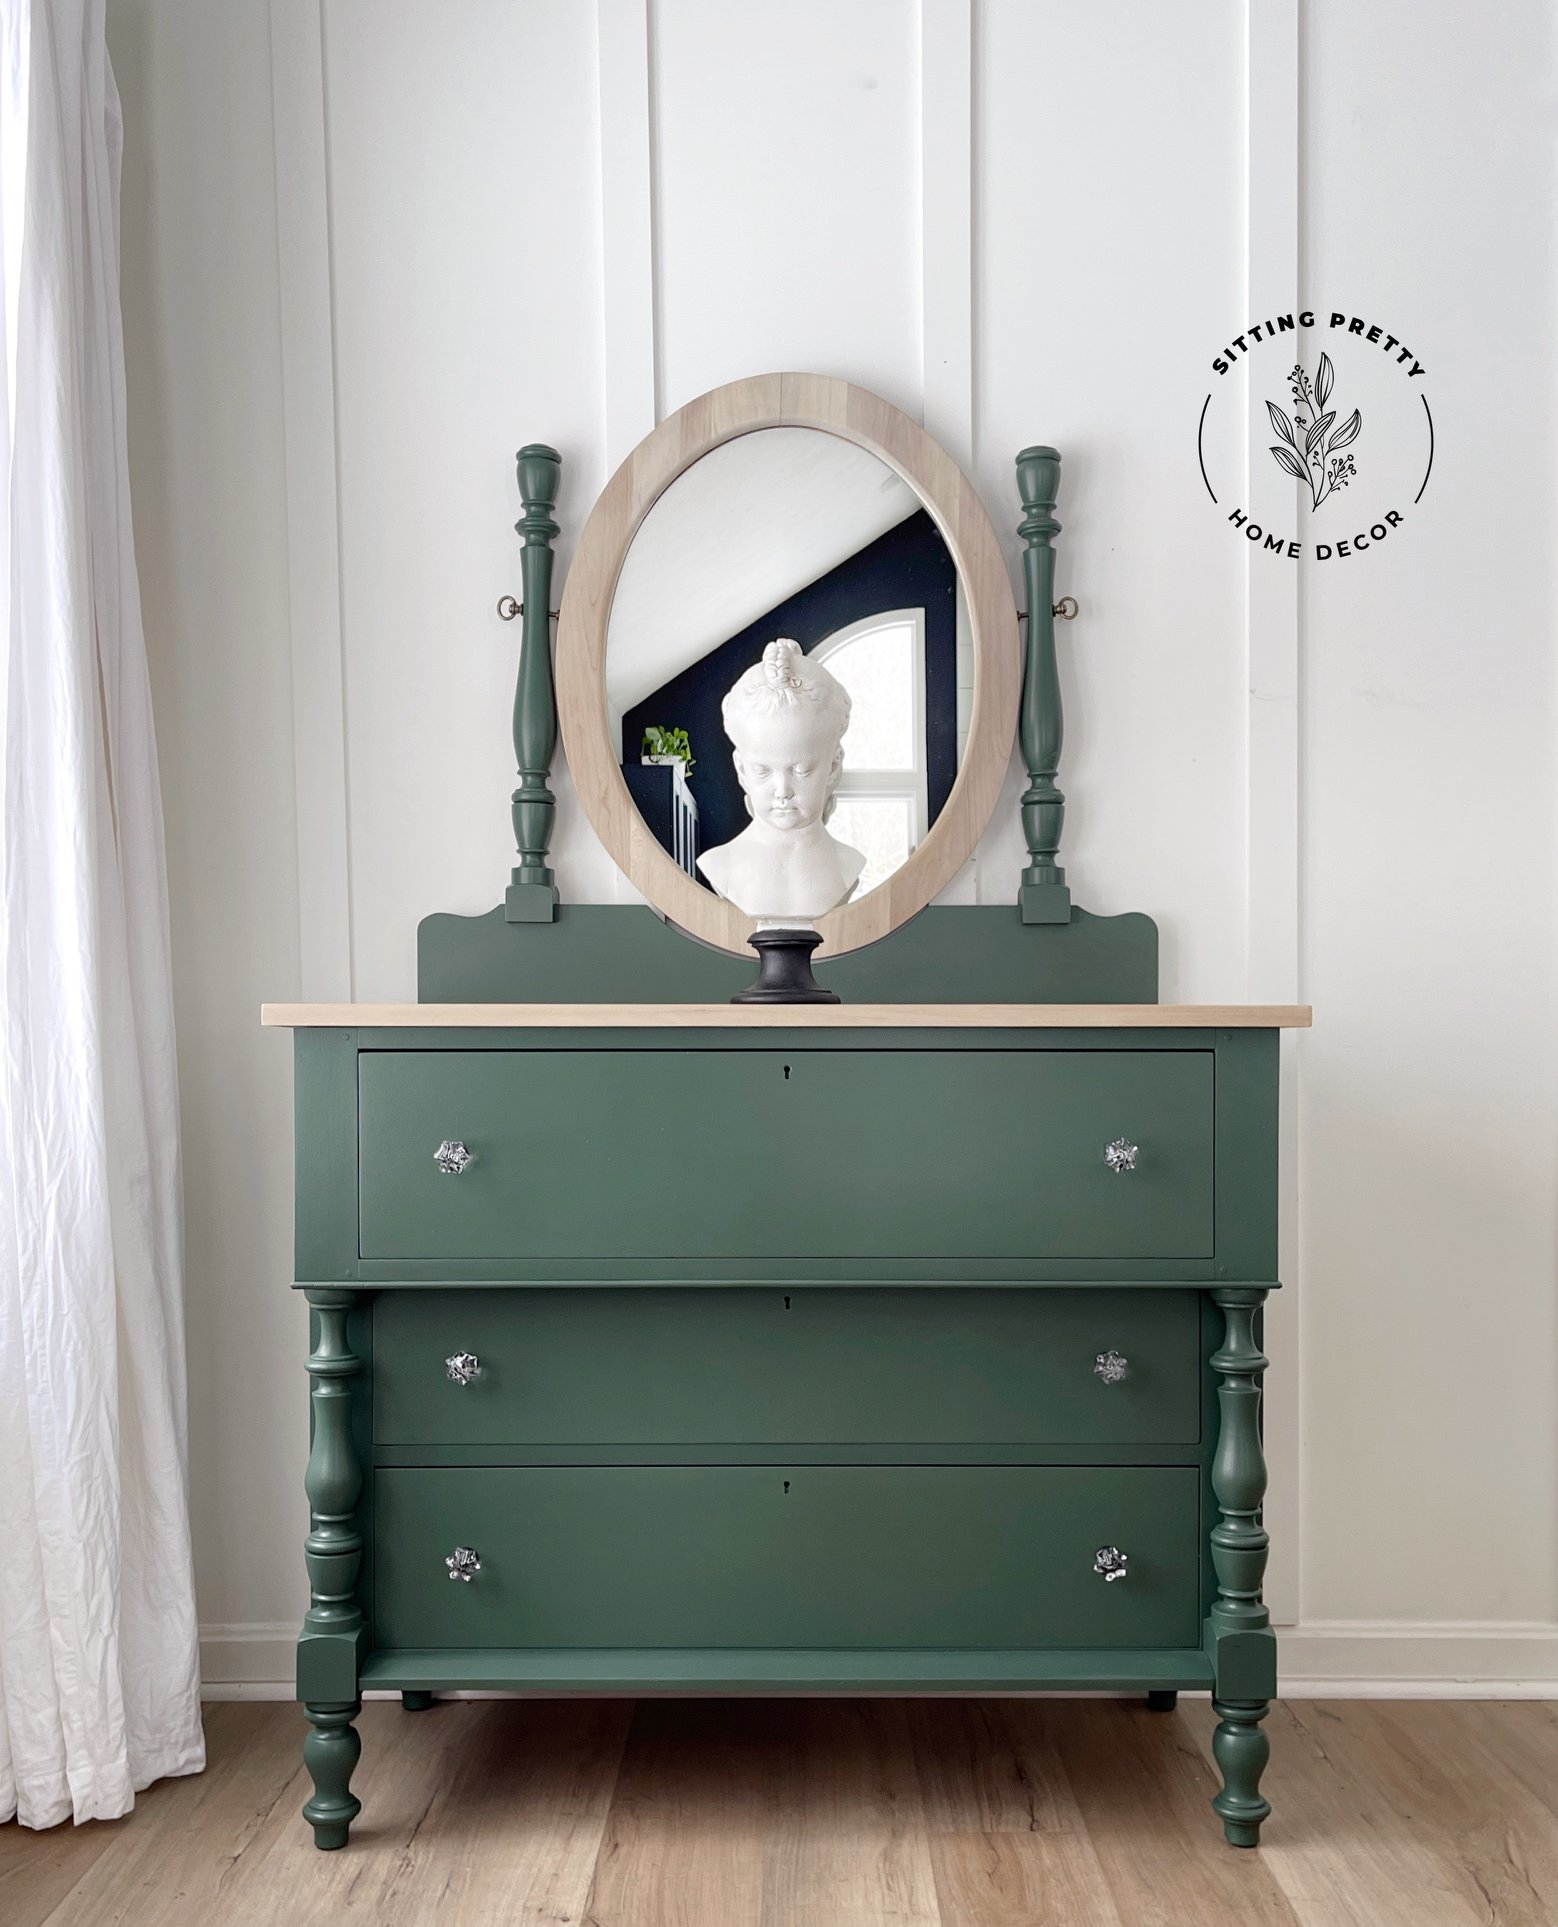 Dresser in Hollow Hill with natural wood top and mirror